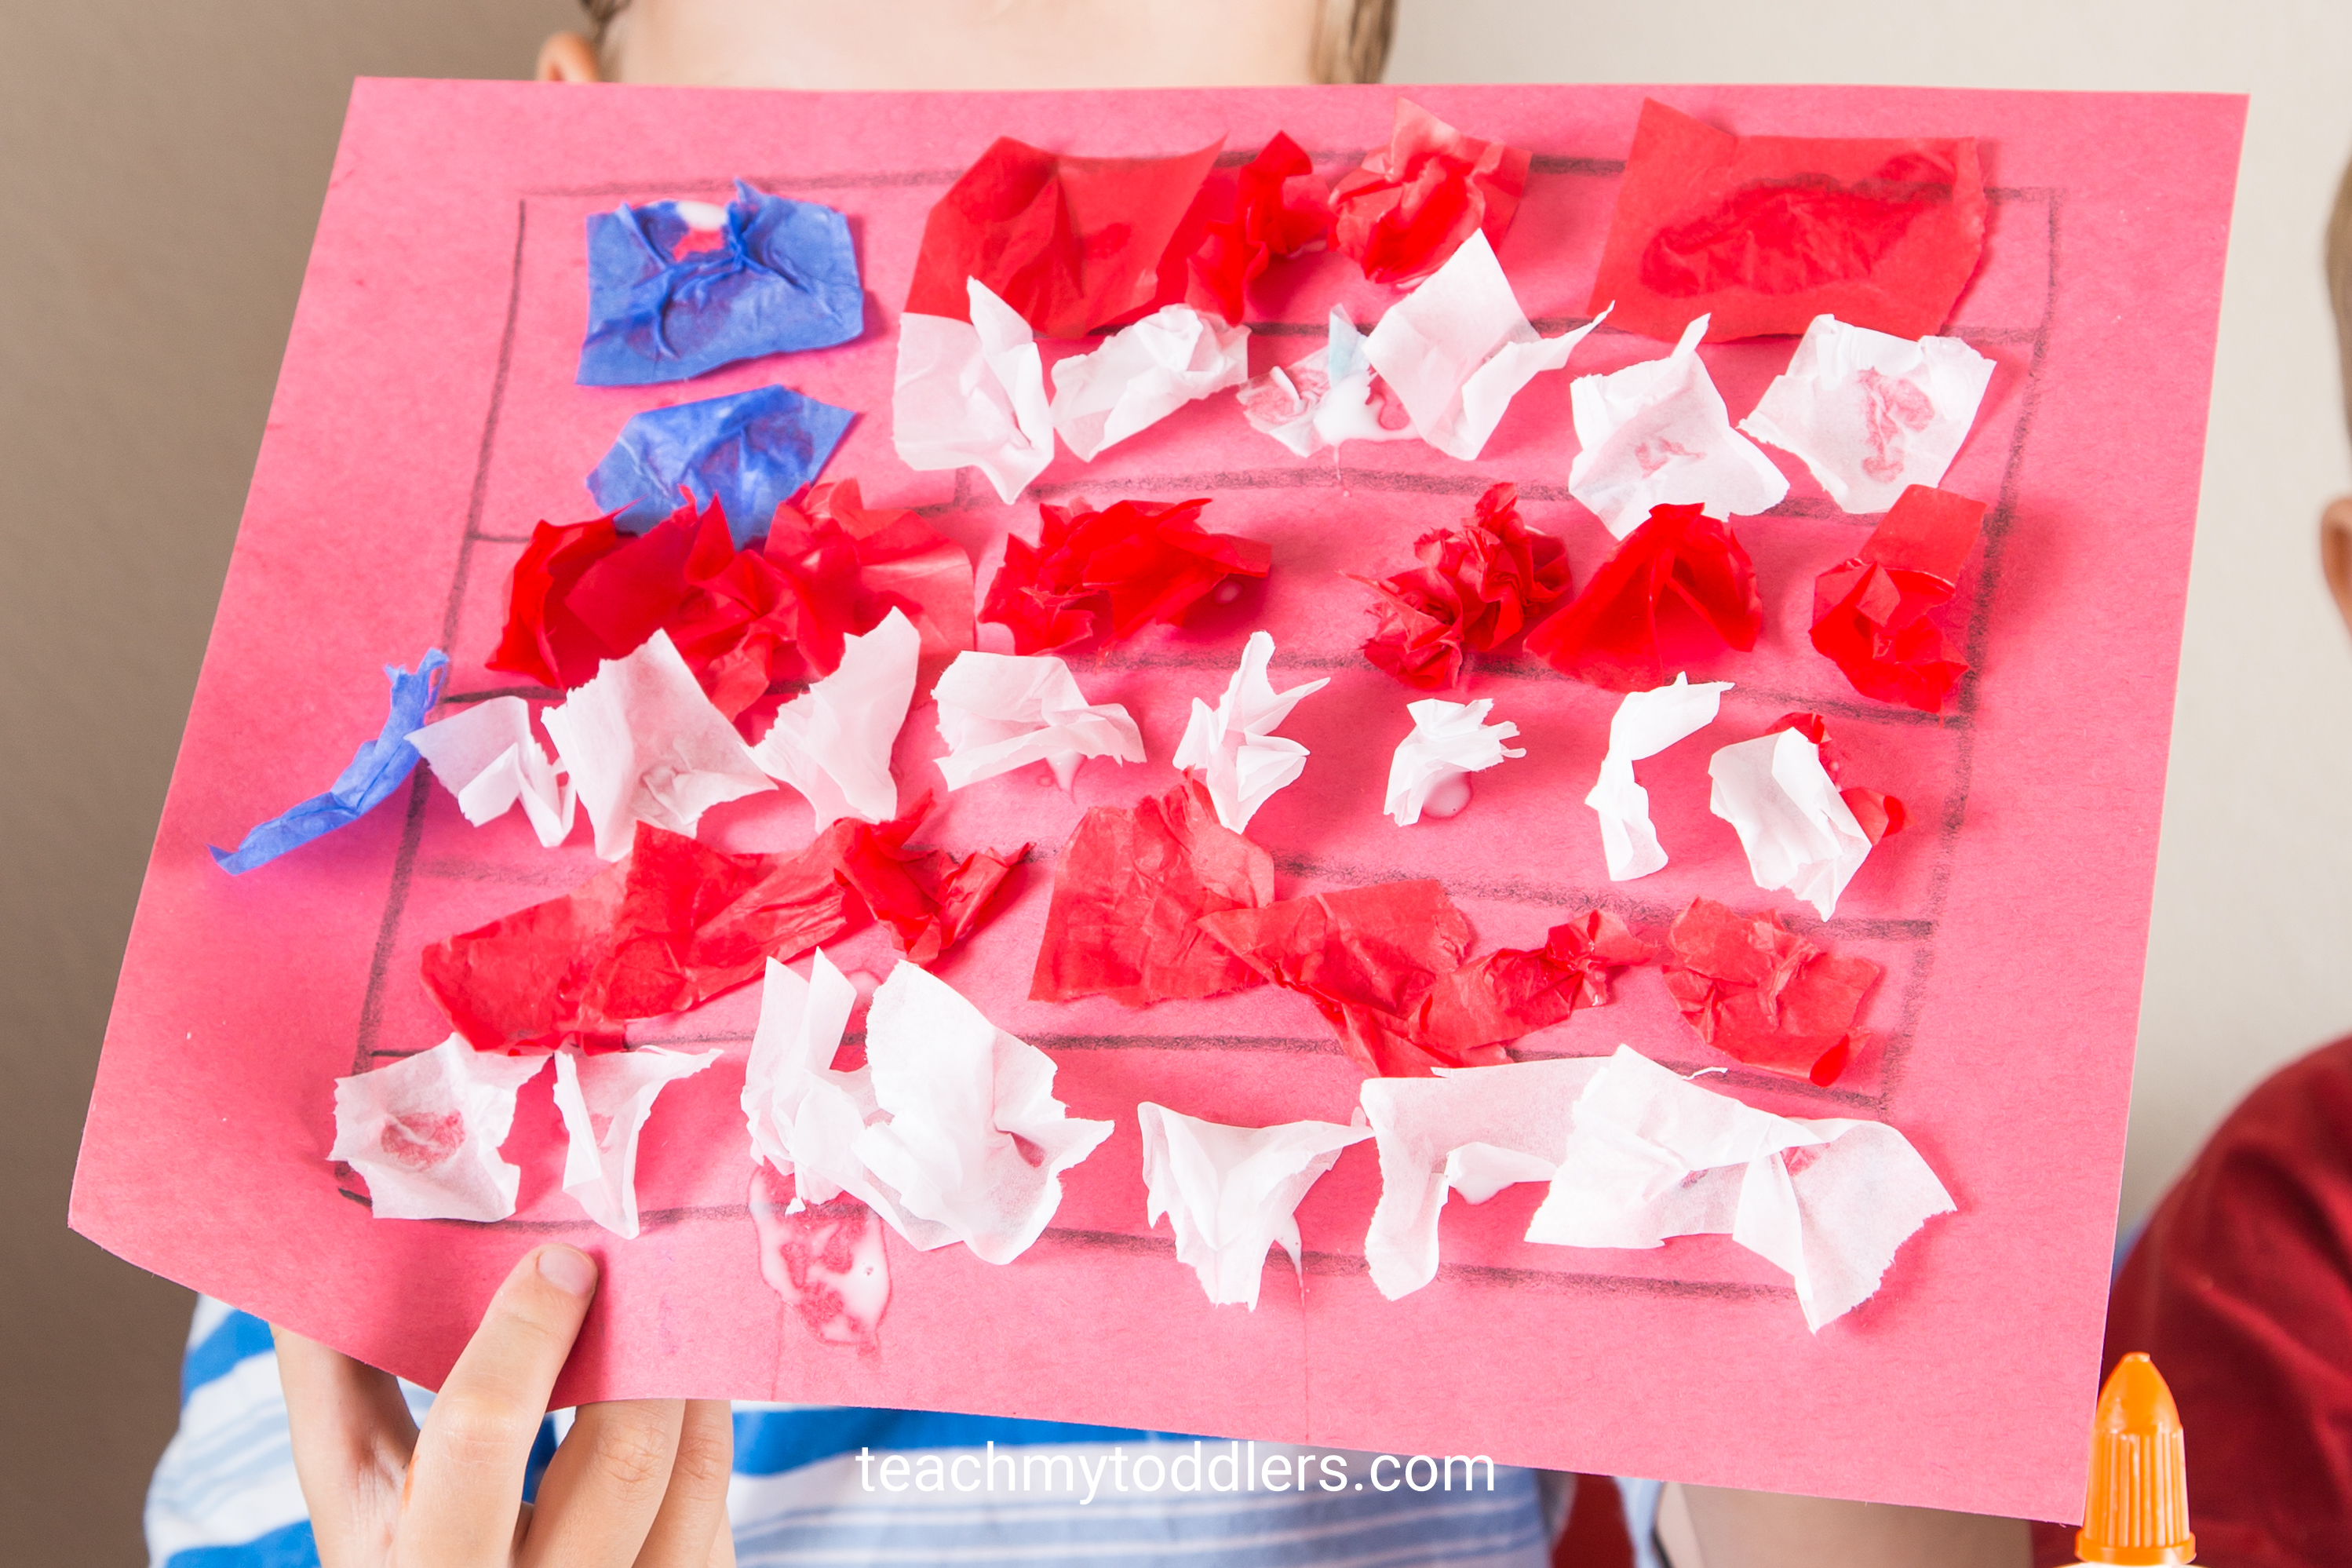 Find out how to use these red, white and blue crafts to teach your toddlers about 4th of july